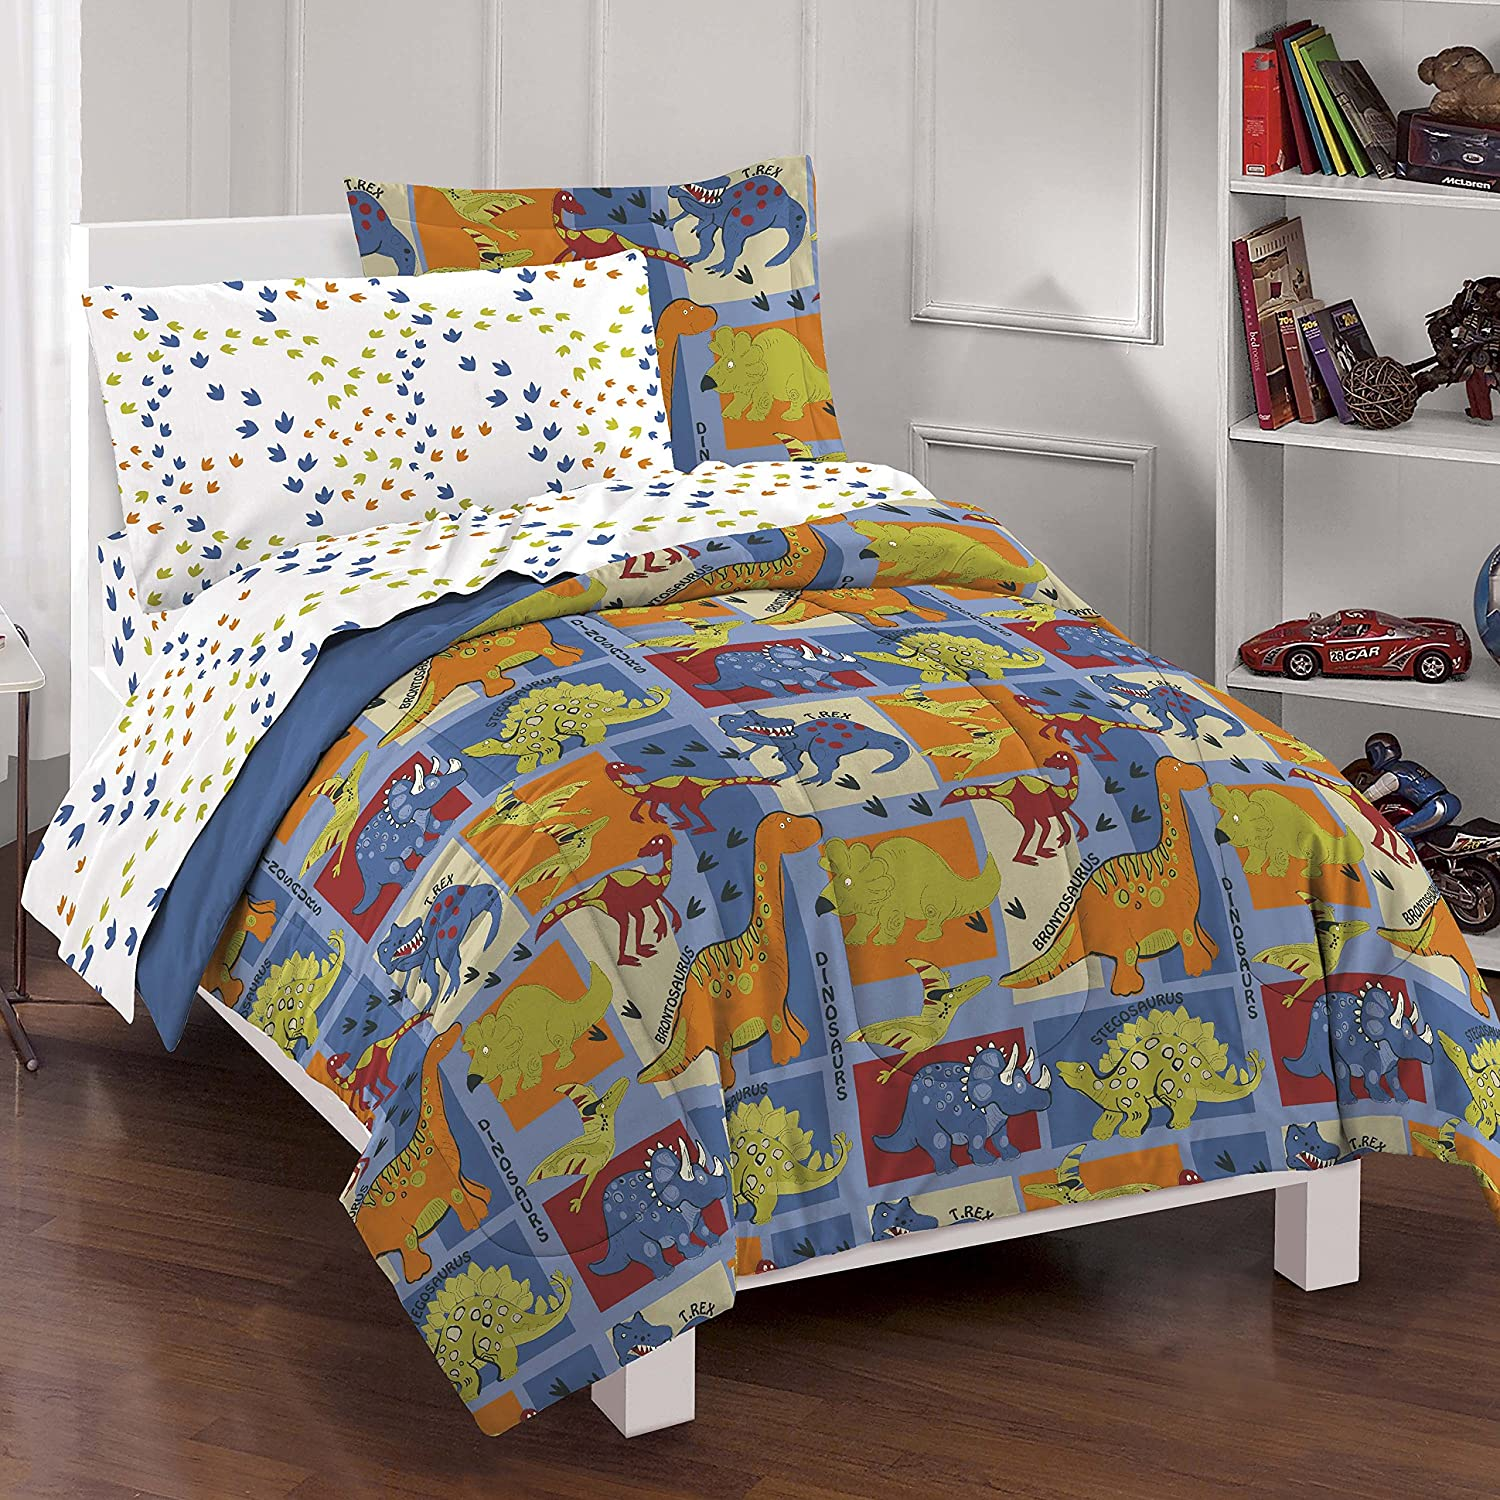 Amazon Dream Factory Dinosaur Blocks Ultra Soft Microfiber Boys